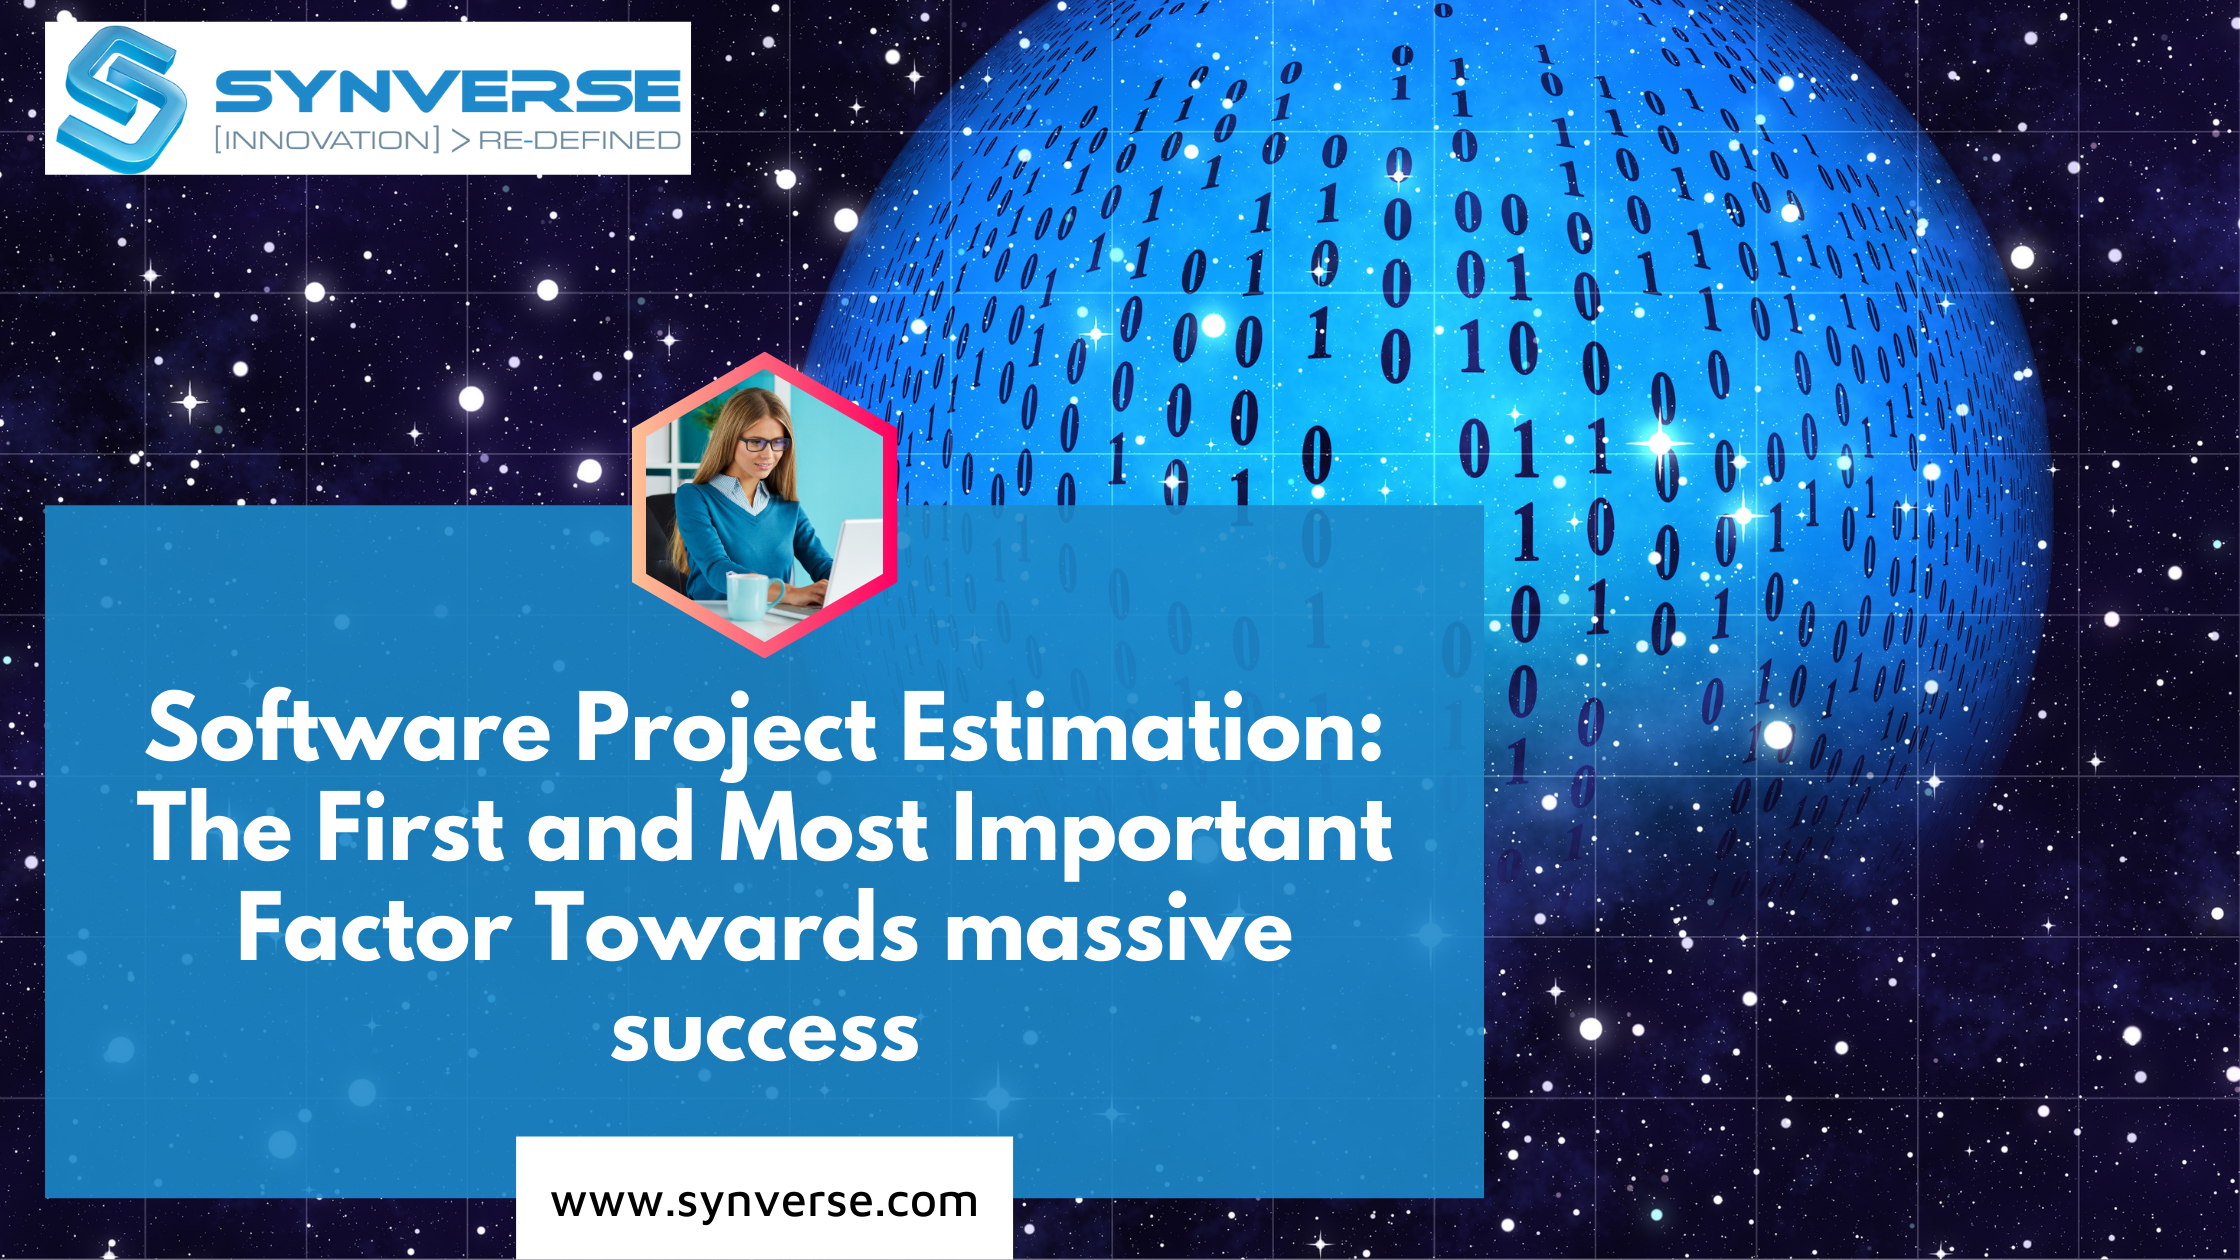 Software Project Estimation The First and Most Important Factor Towards massive success